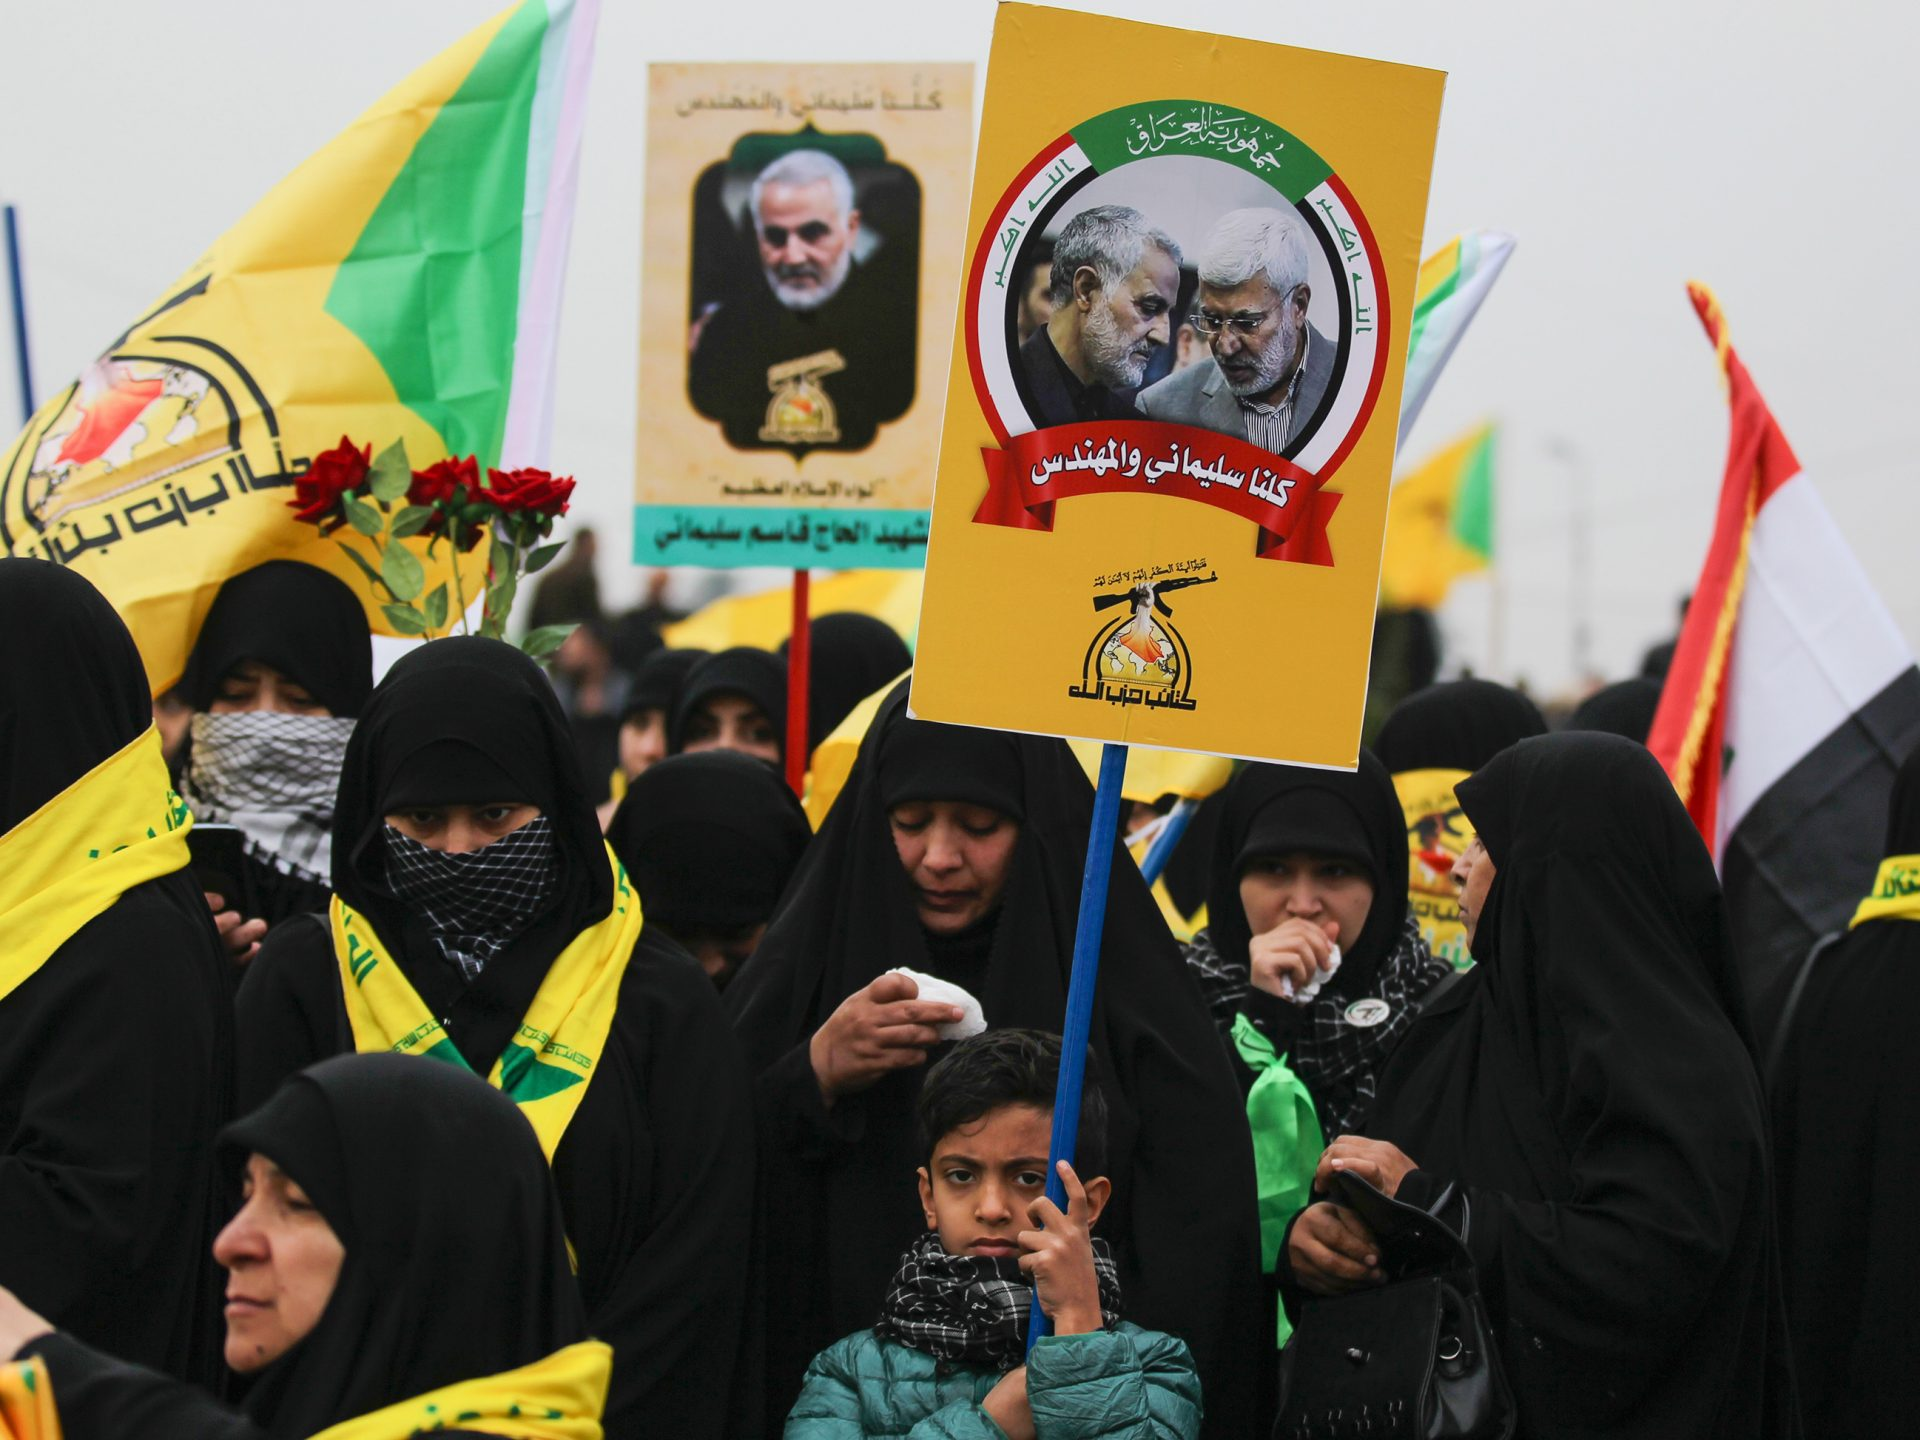 """Demonstrators hold aloft portraits of Iraqi paramilitary chief Abu Mahdi al-Muhandis and Iranian military leader Qassem Soleimani during the funeral procession Saturday in Baghdad. The crowd of thousands chanted """"Death to America"""" at times."""